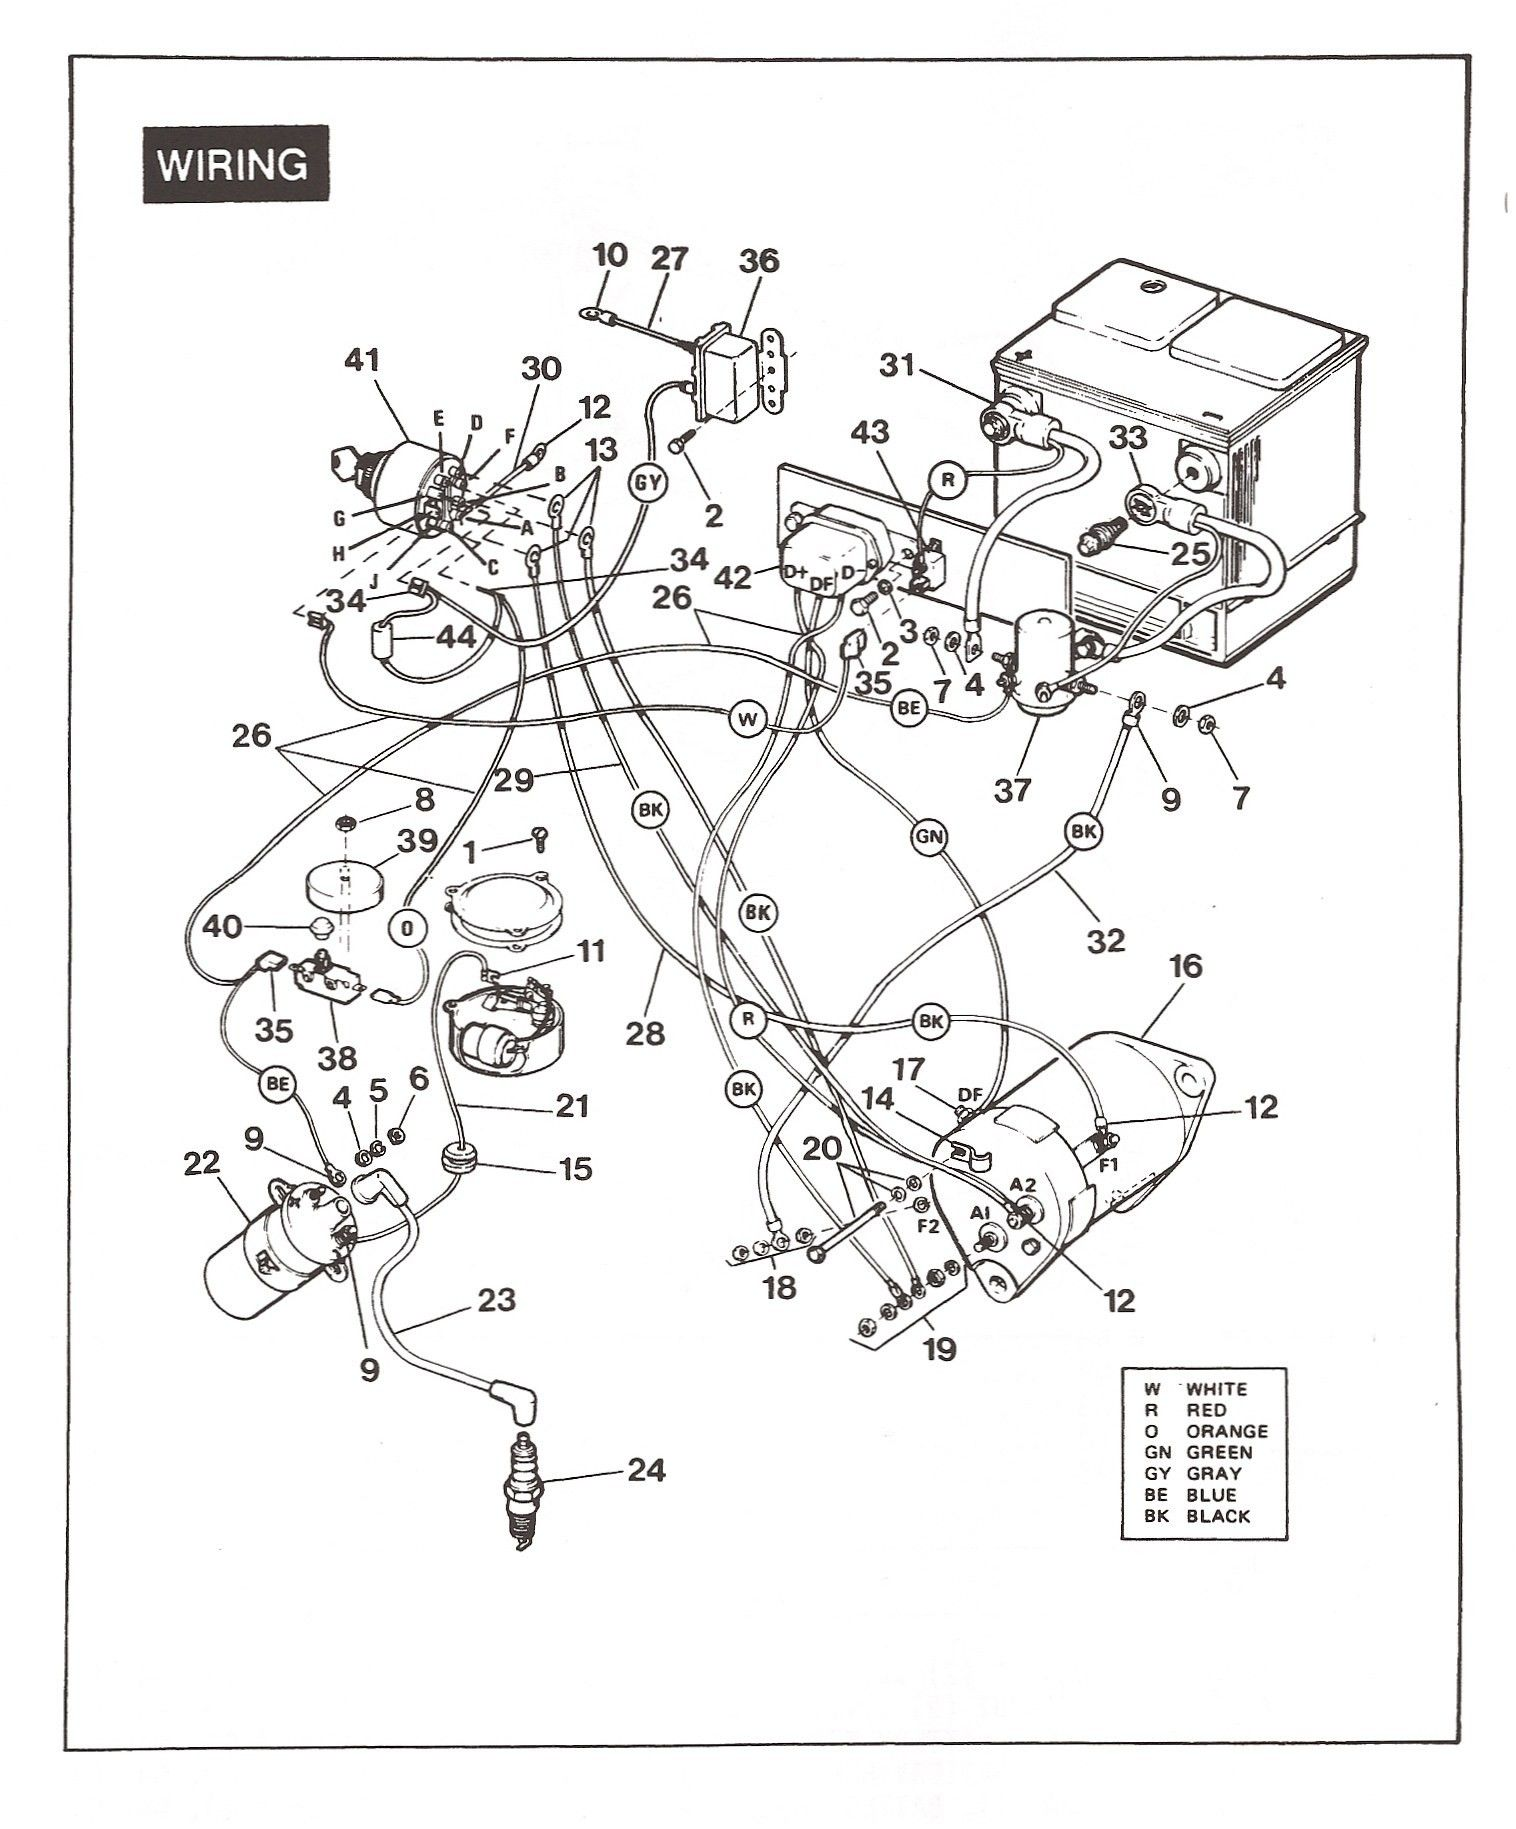 Unique Wiring Diagram for 1987 Club Car Golf Cart #diagram